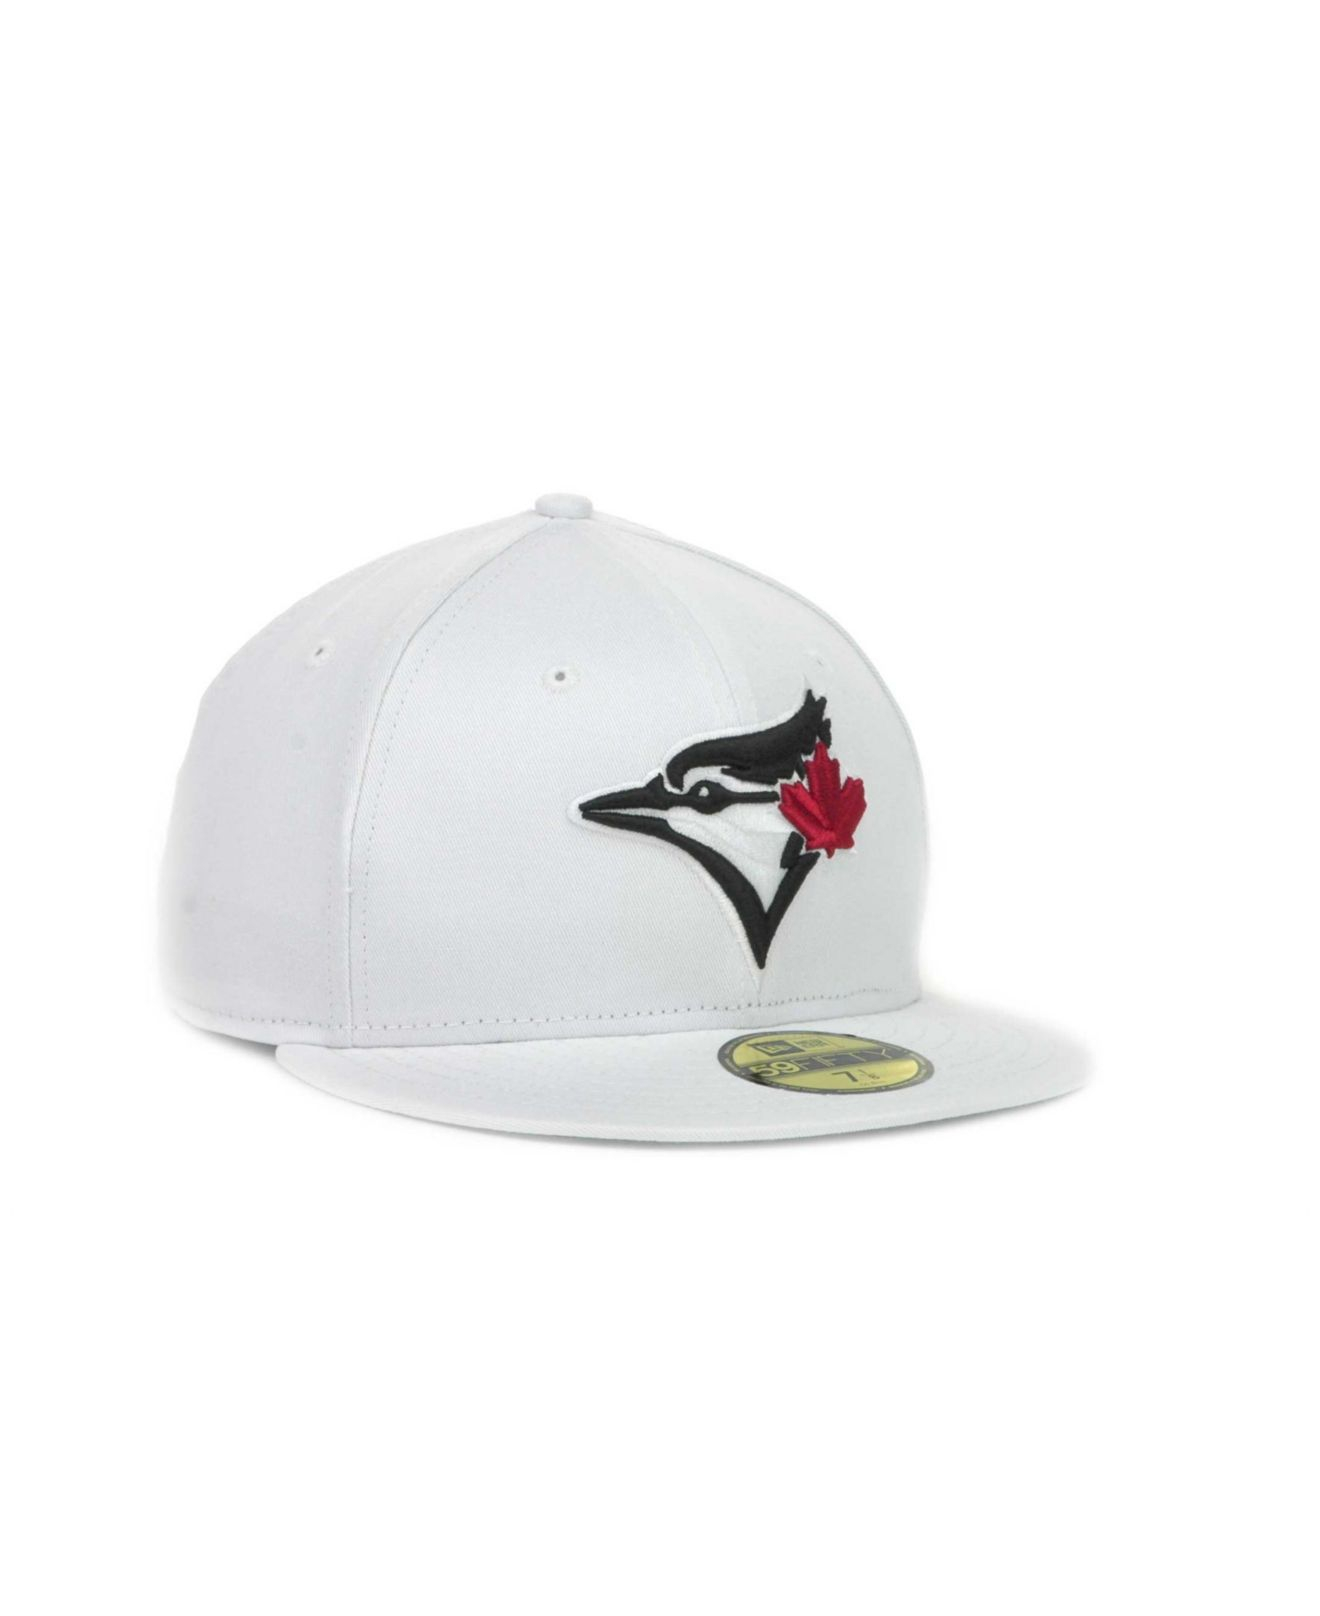 new products 0b2fb 2161f ... where to buy lyst ktz toronto blue jays mlb white and black 59fifty cap  in 42308